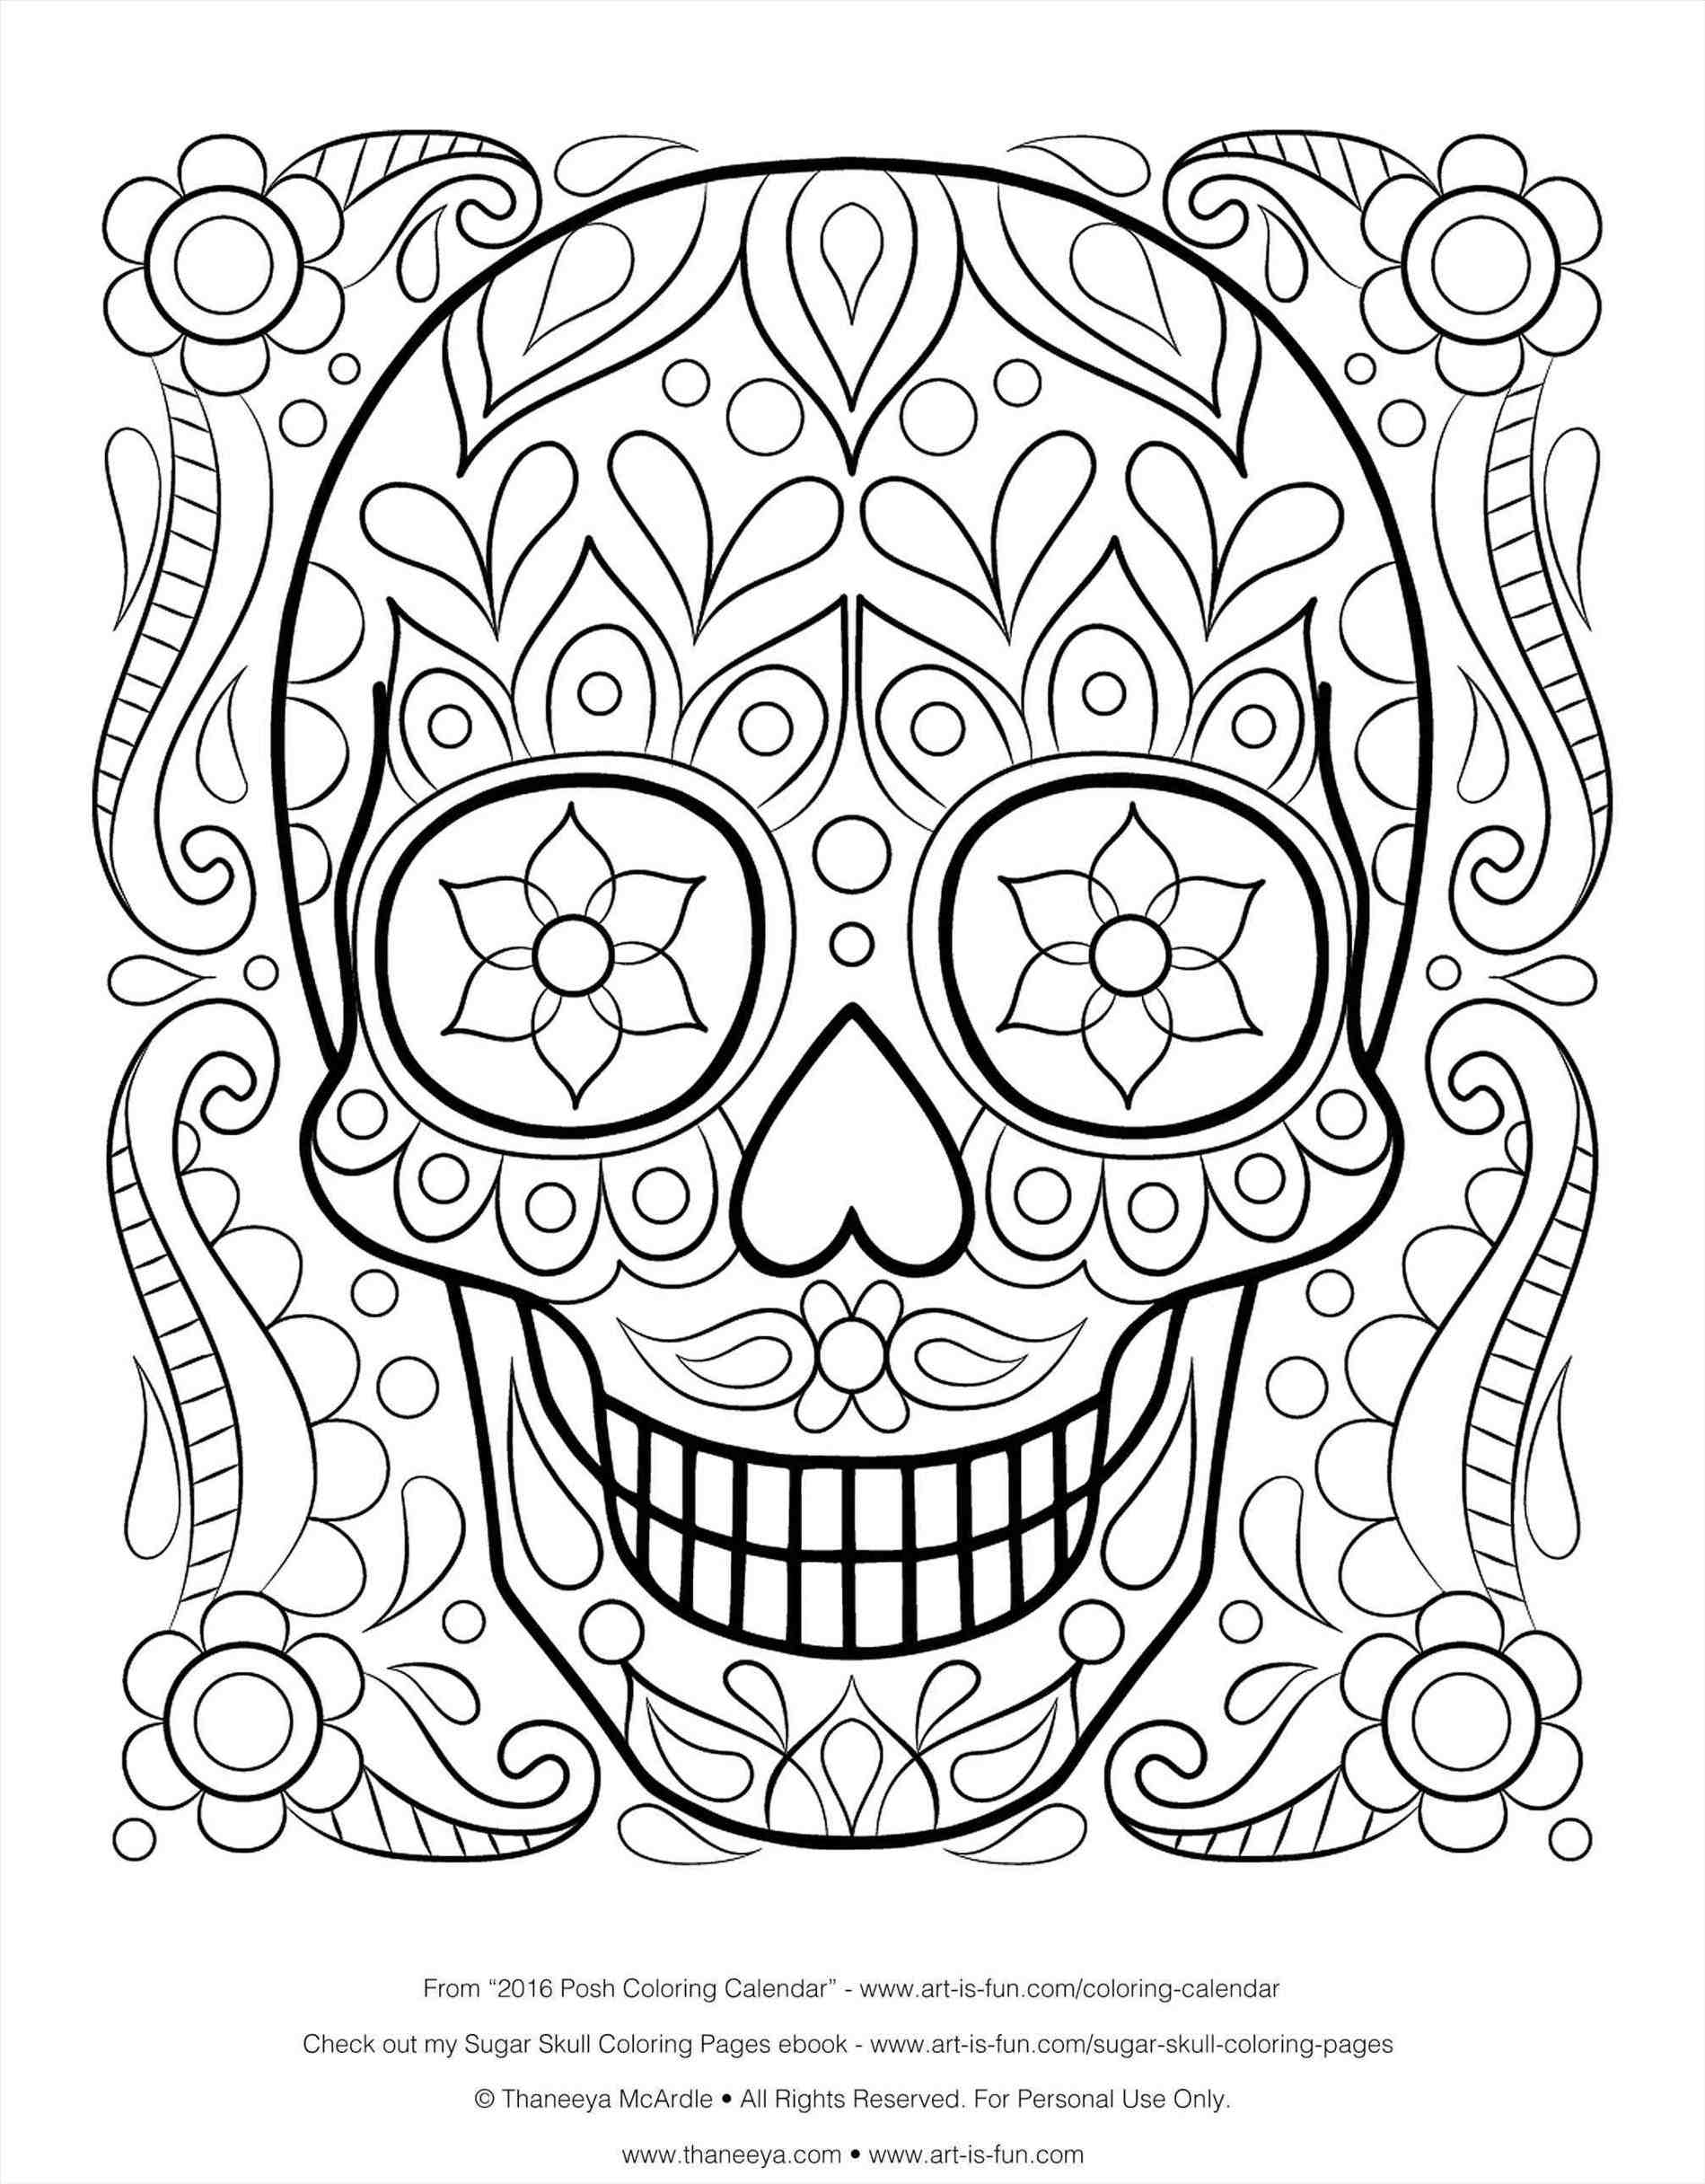 Skulls And Roses Drawing at GetDrawings.com | Free for personal use ...